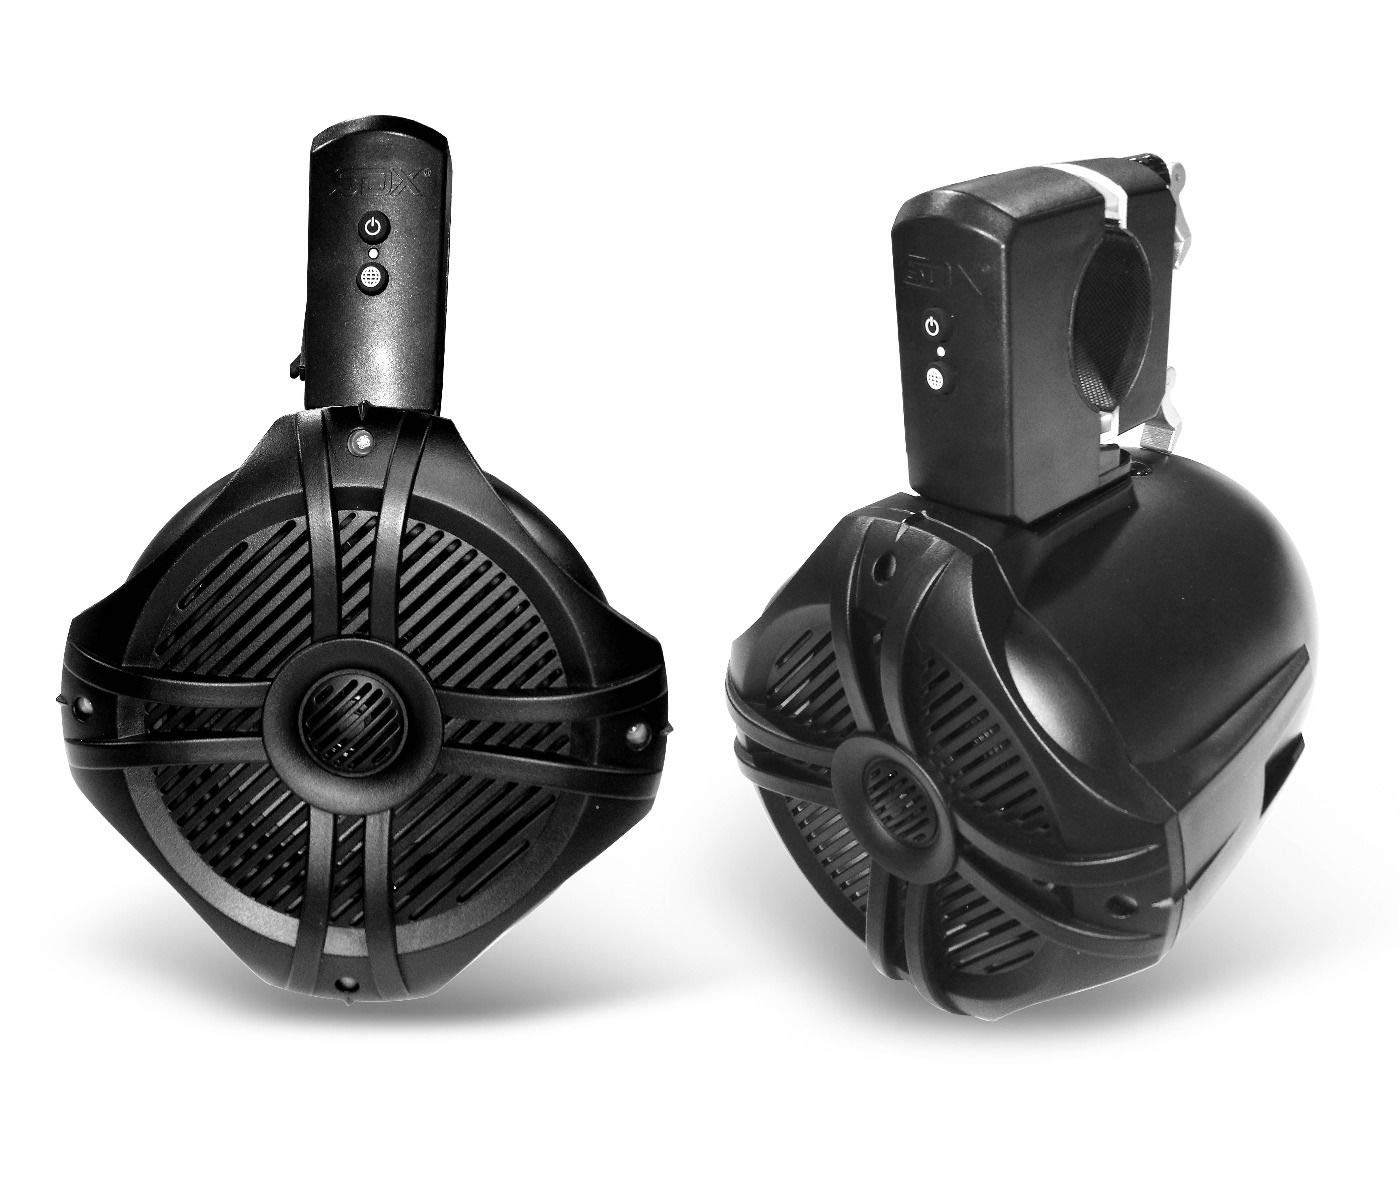 SDX Pro Audio - 6.5'' 350W Fully Wireless Bluetooth Marine Speaker System (Pair) - Wakeboard Tower/Waketower and Fits Rollbar/Rollcage - Rechargeable, No Wiring/Cables Needed - No Receiver Needed